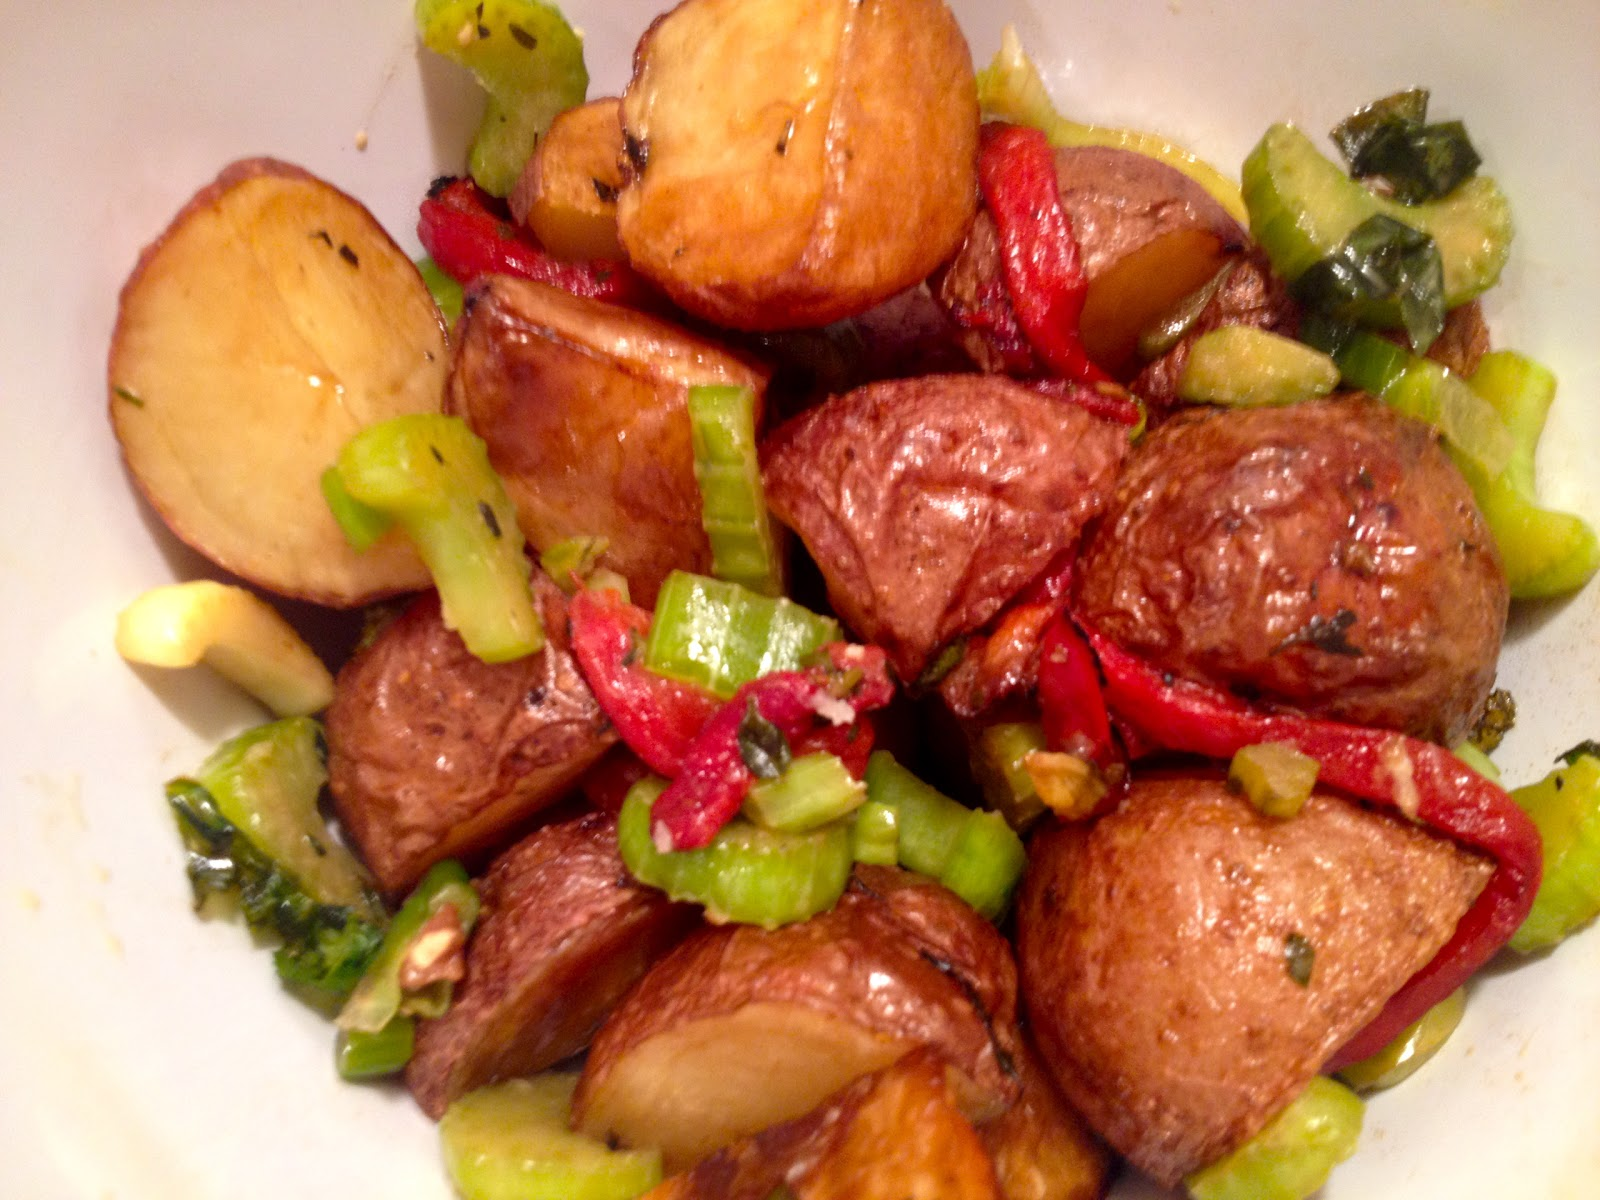 Roasted Red Bliss Potato Salad with Balsamic Vinaigrette